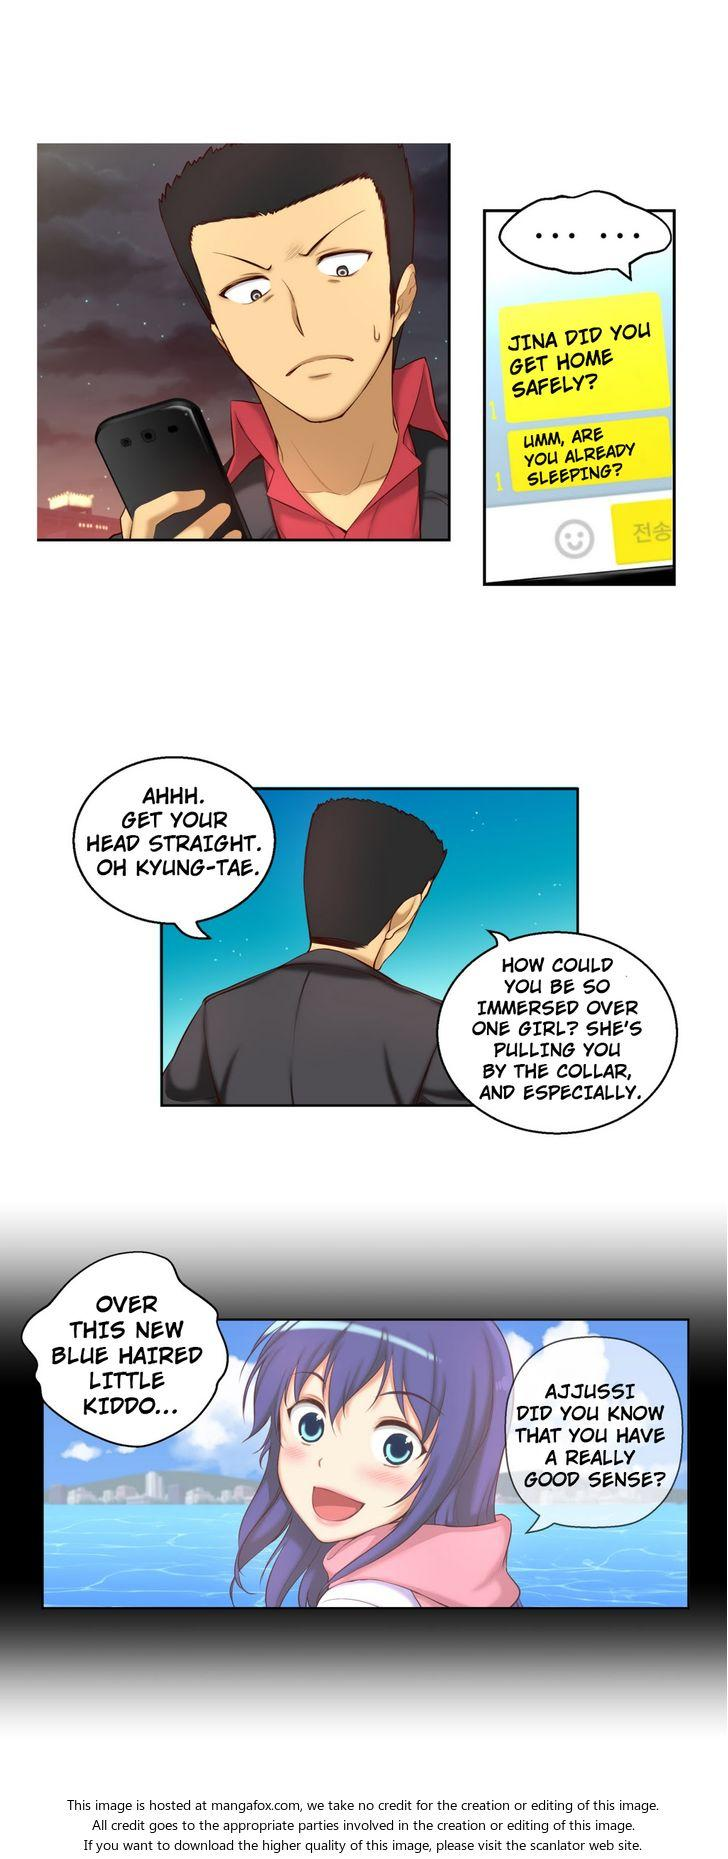 [Donggul Gom] She is Young (English) Part 1/2 705